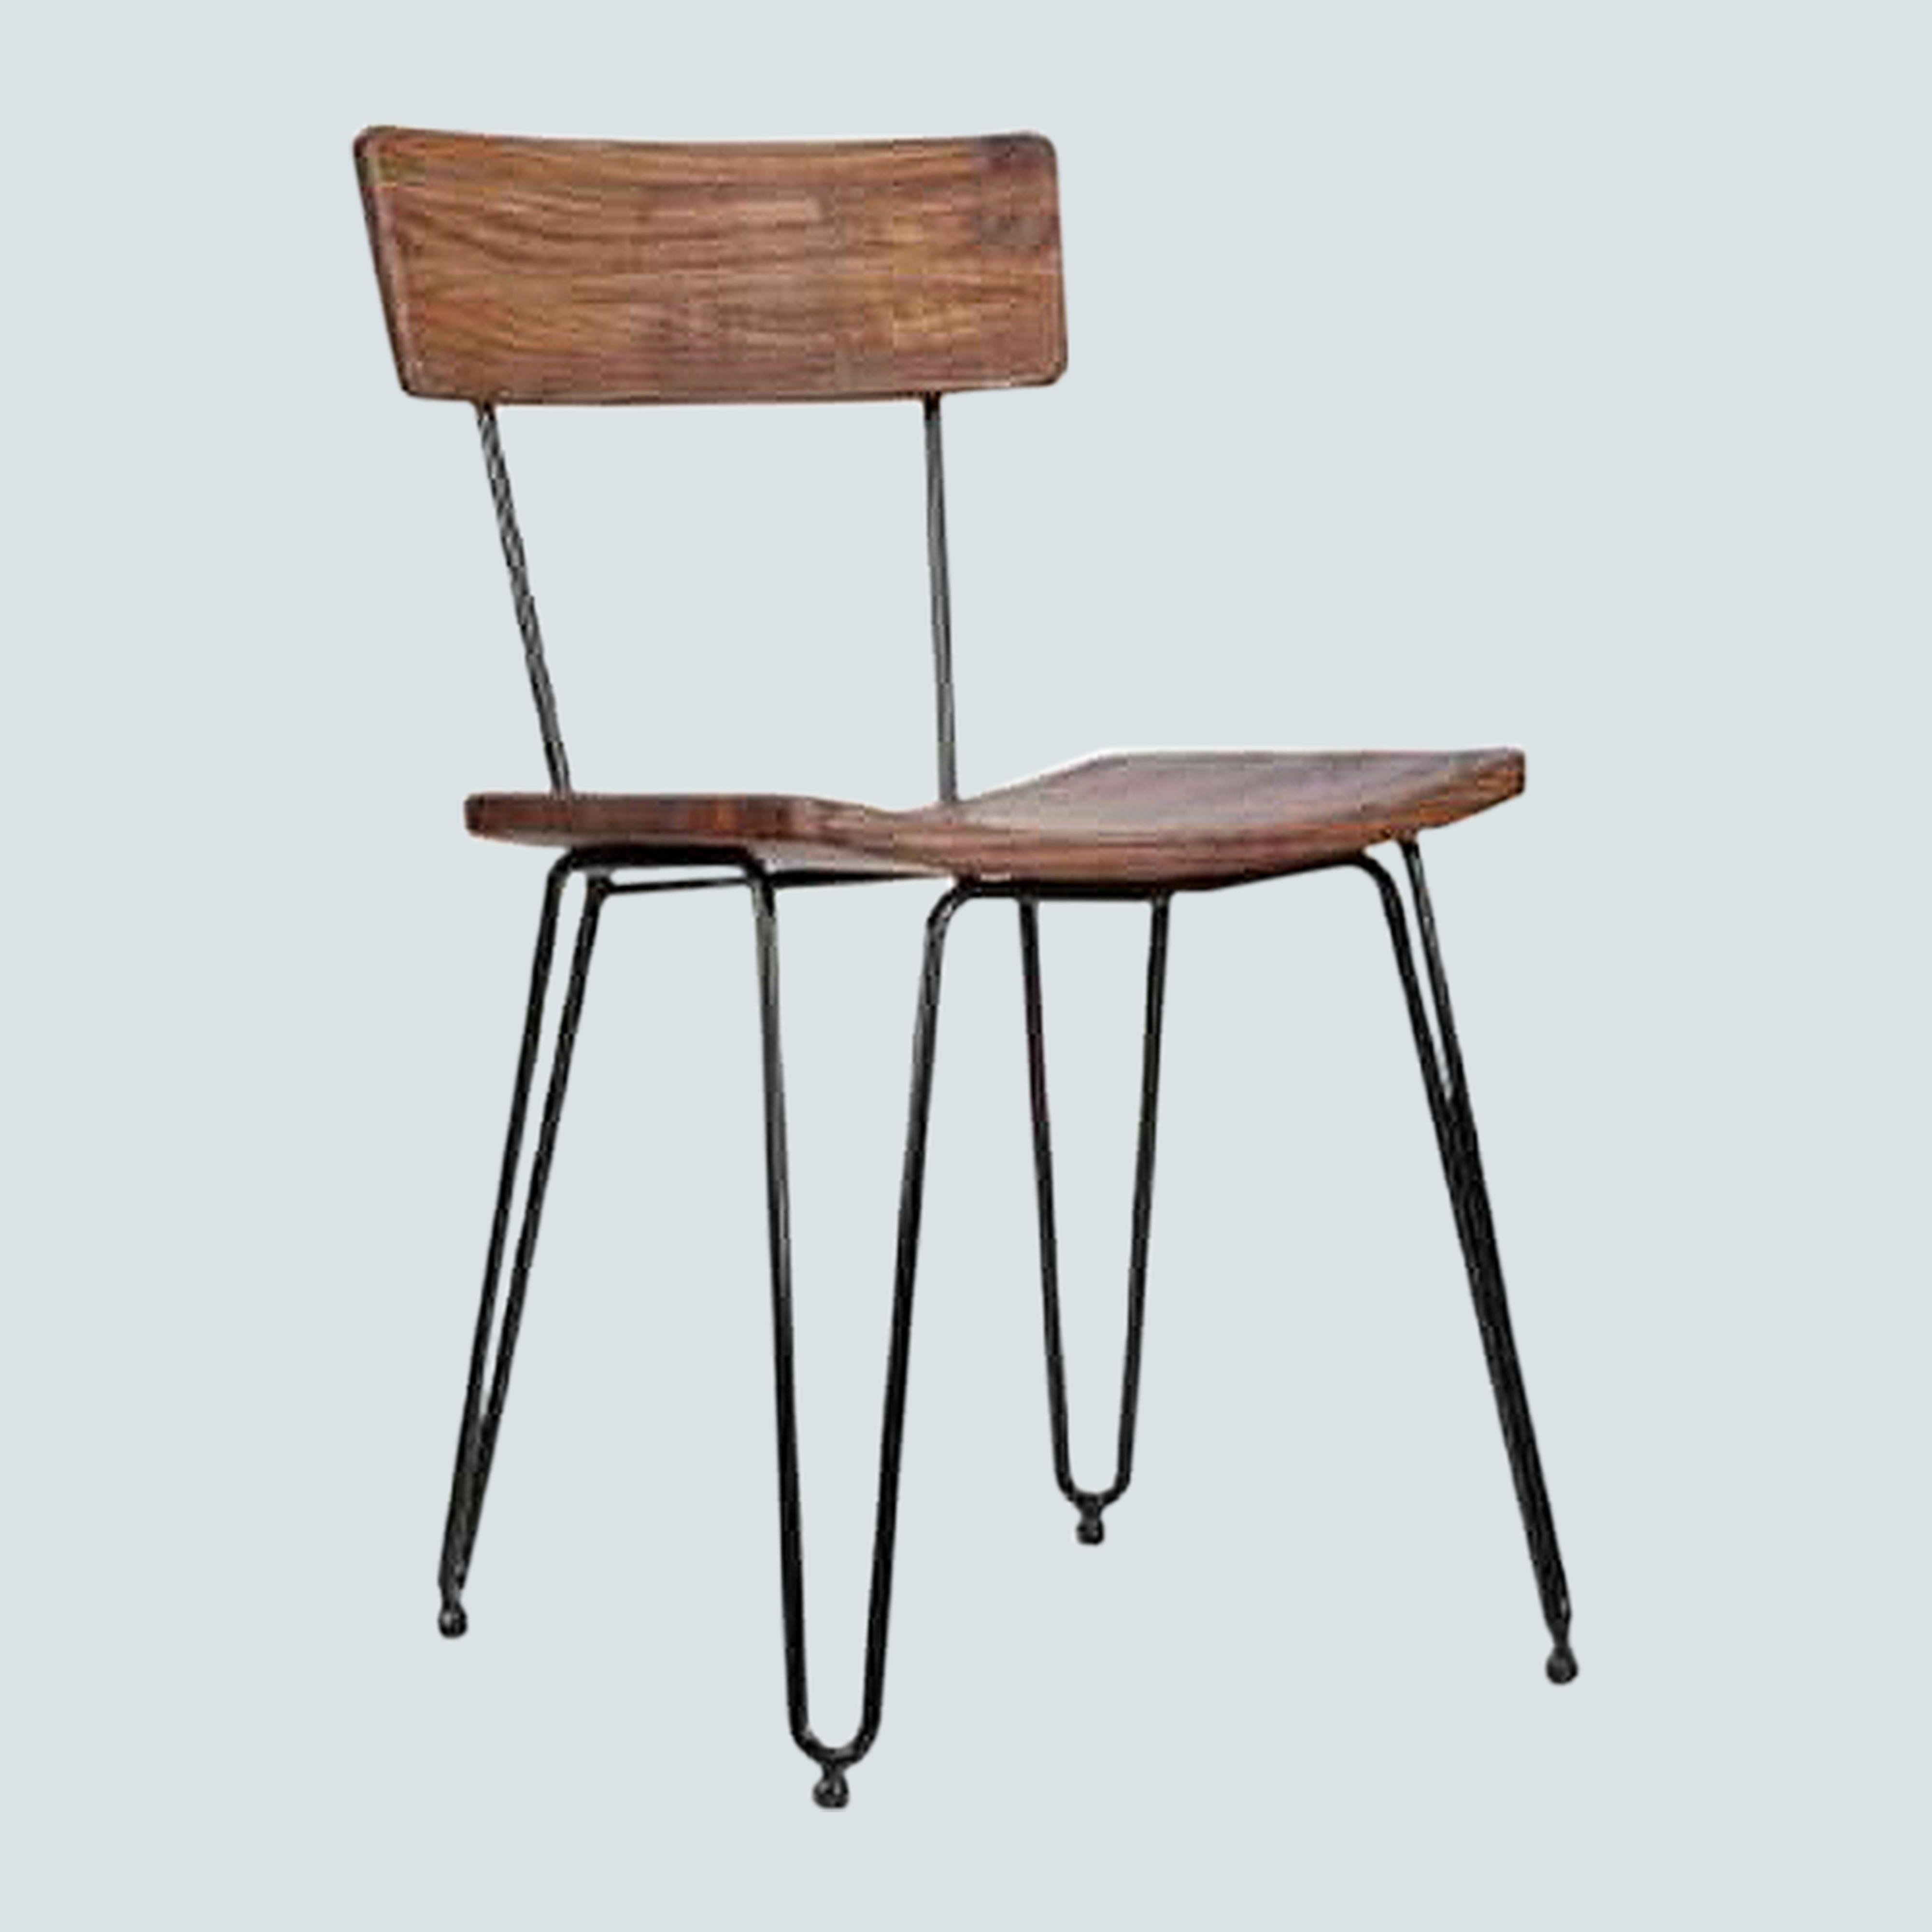 Industrial String Frame Dining Chair, HAIRPIN METAL Teak WOOD, GUNMETAL for kicthen, bristo, café, Home Office, Waiting Room Reception